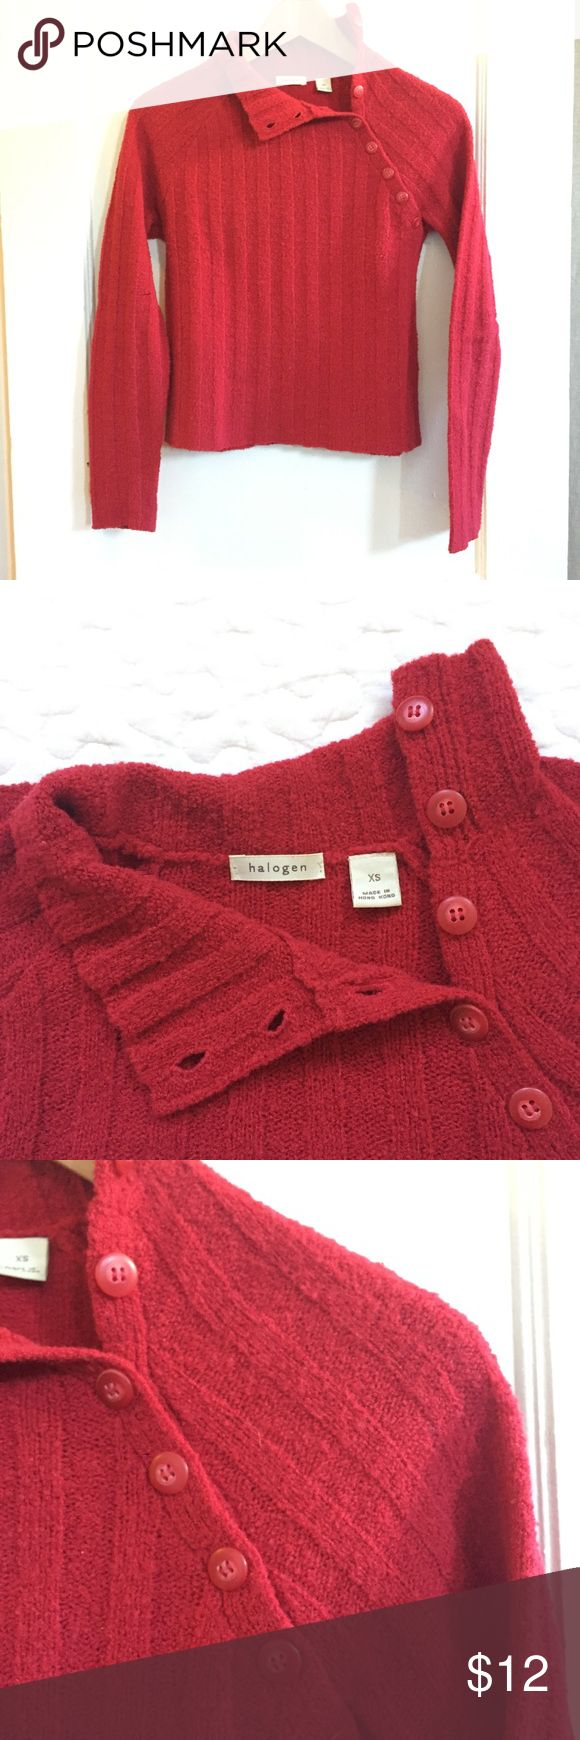 Halogen Mock-neck sweater Halogen mock-neck sweater. Cherry red, nubby knit, buttons on neck down to armpit. Hits at top of hip, so works great with high waisted pants or skirts. 65% wool, 18% nylon, 17% acrylic. Size XS. Excellent used condition. Halogen Sweaters Cowl & Turtlenecks